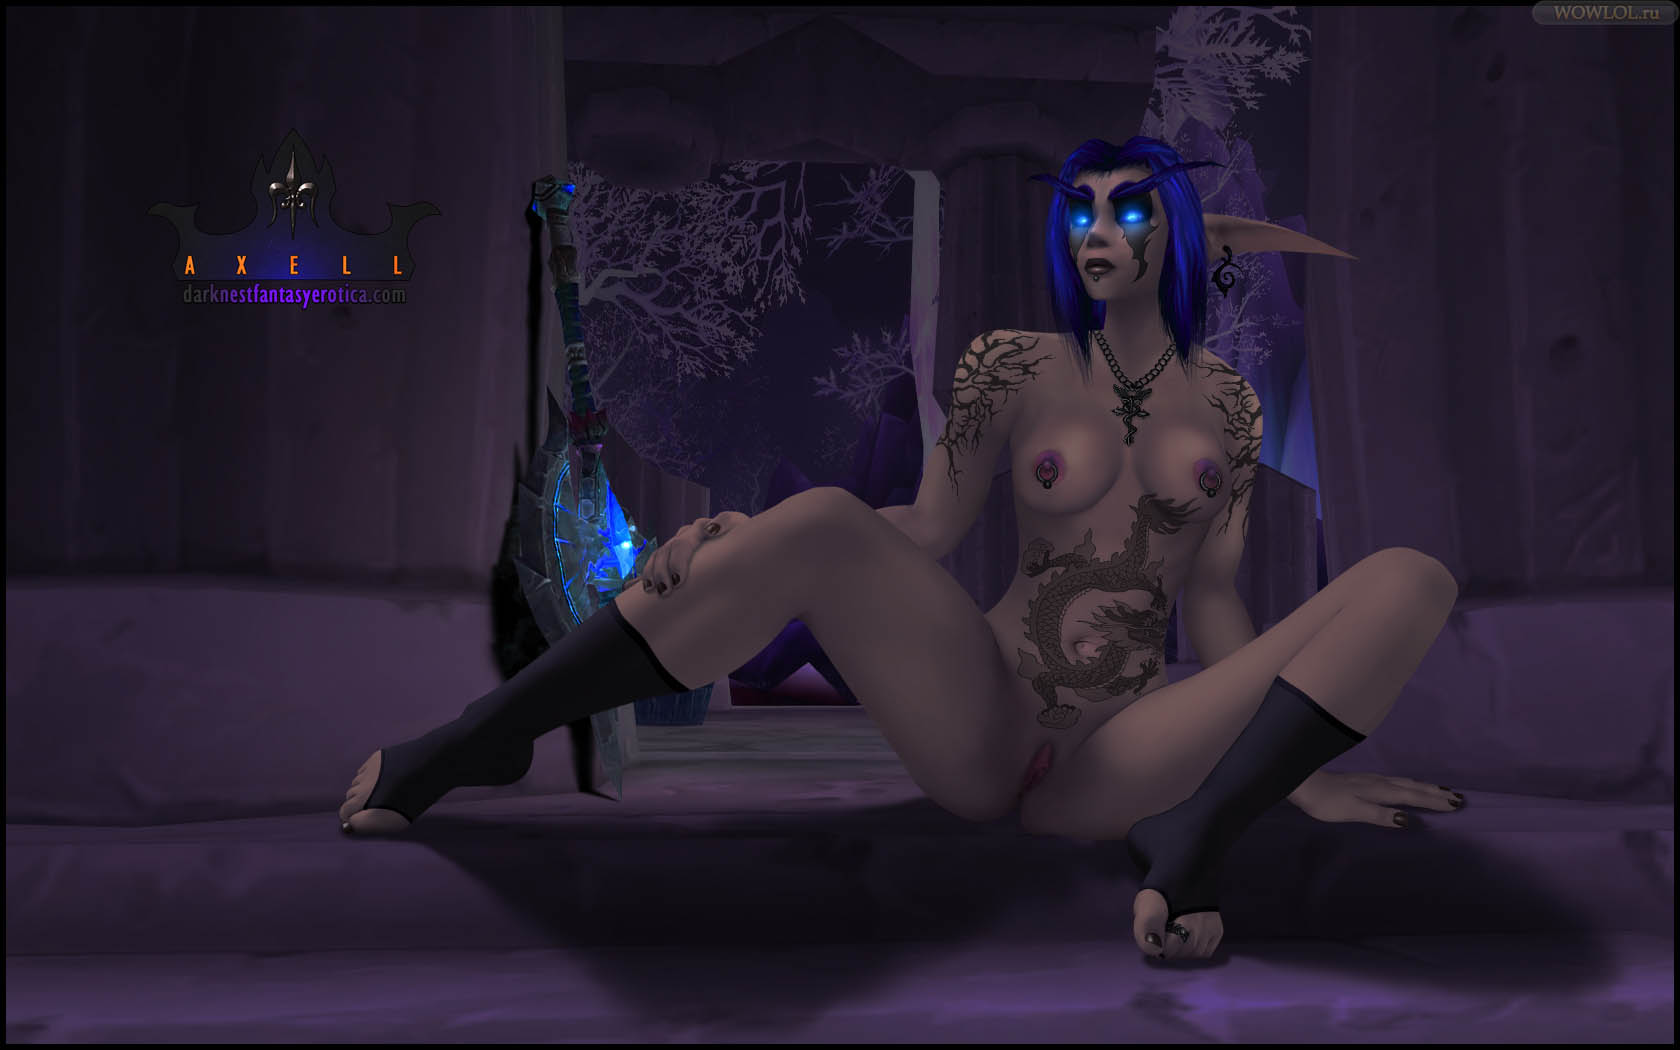 World of warcraft naked mod adult clips